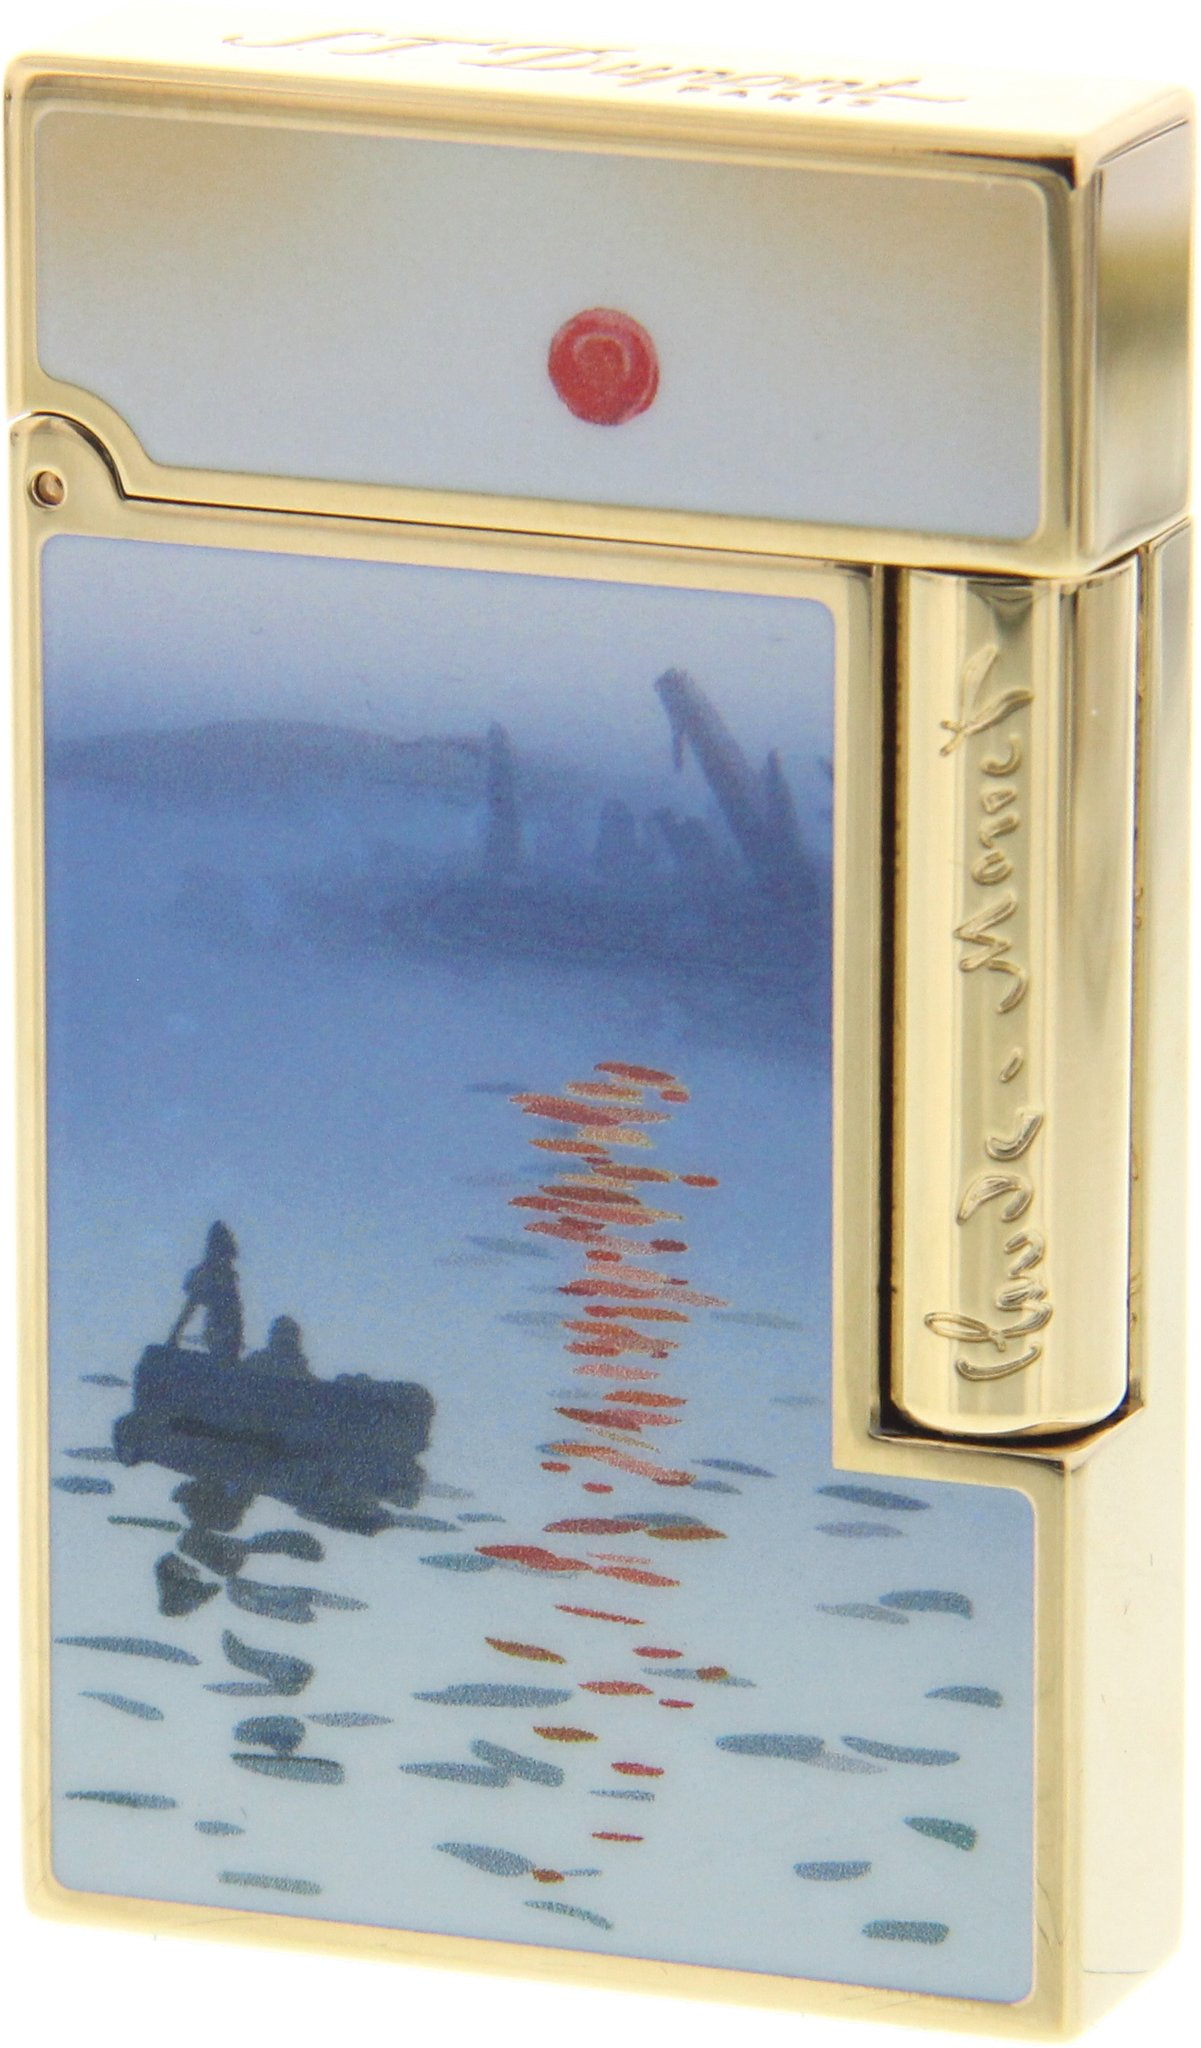 S.T. Dupont Ligne 2 Monet Limited Edition (016349) Vorderseite